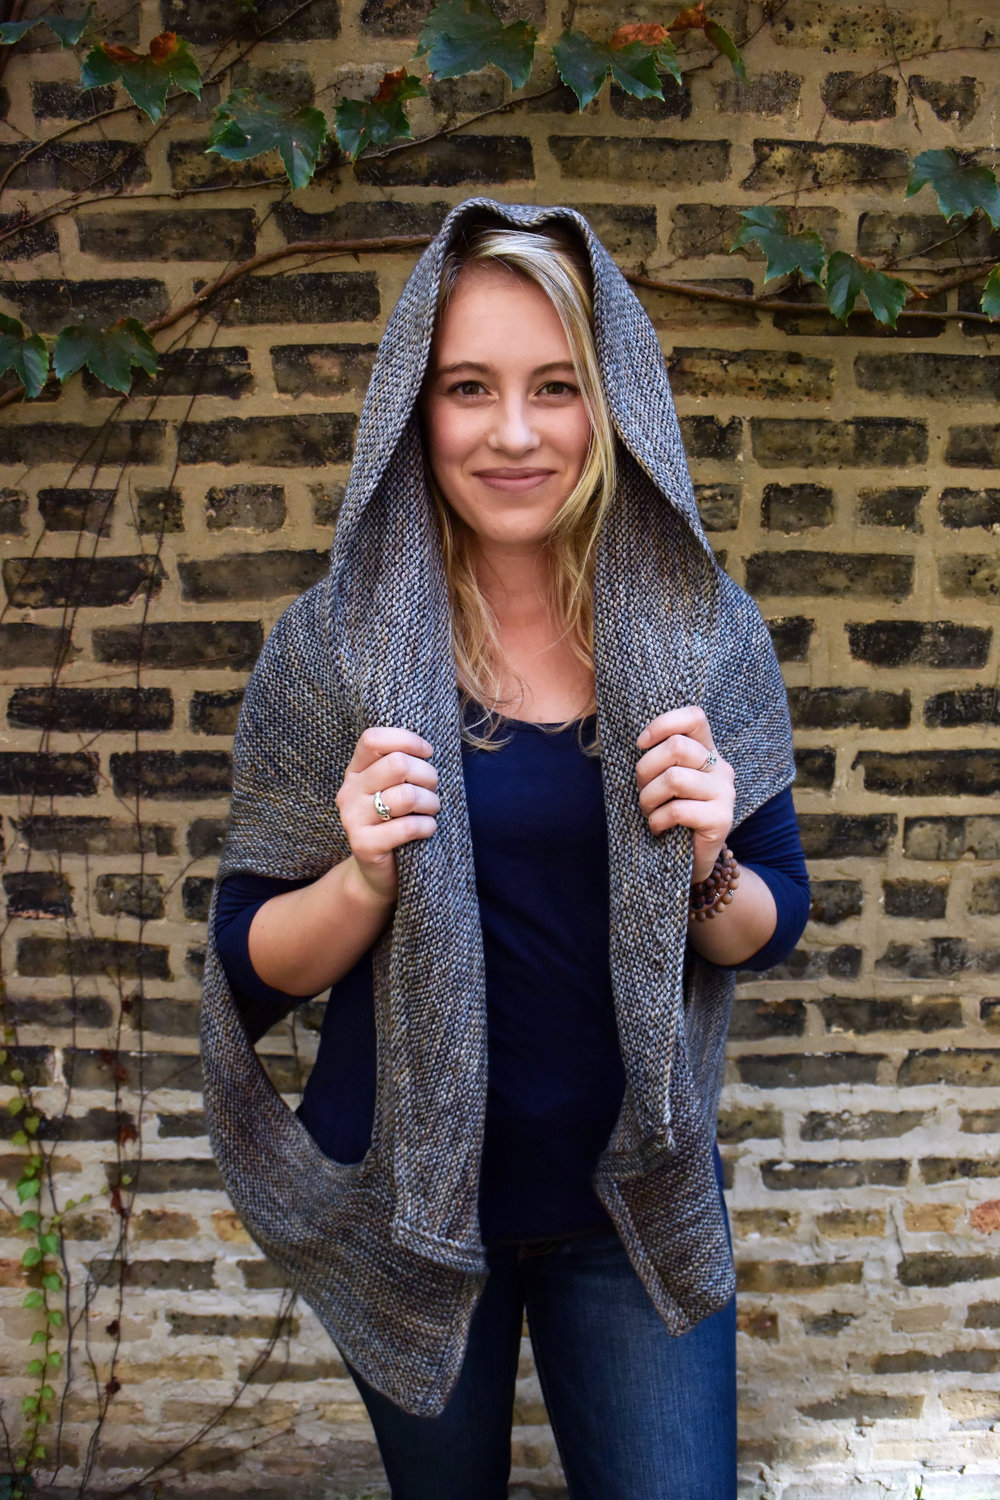 The Rachel Wrap, worn with the hood up